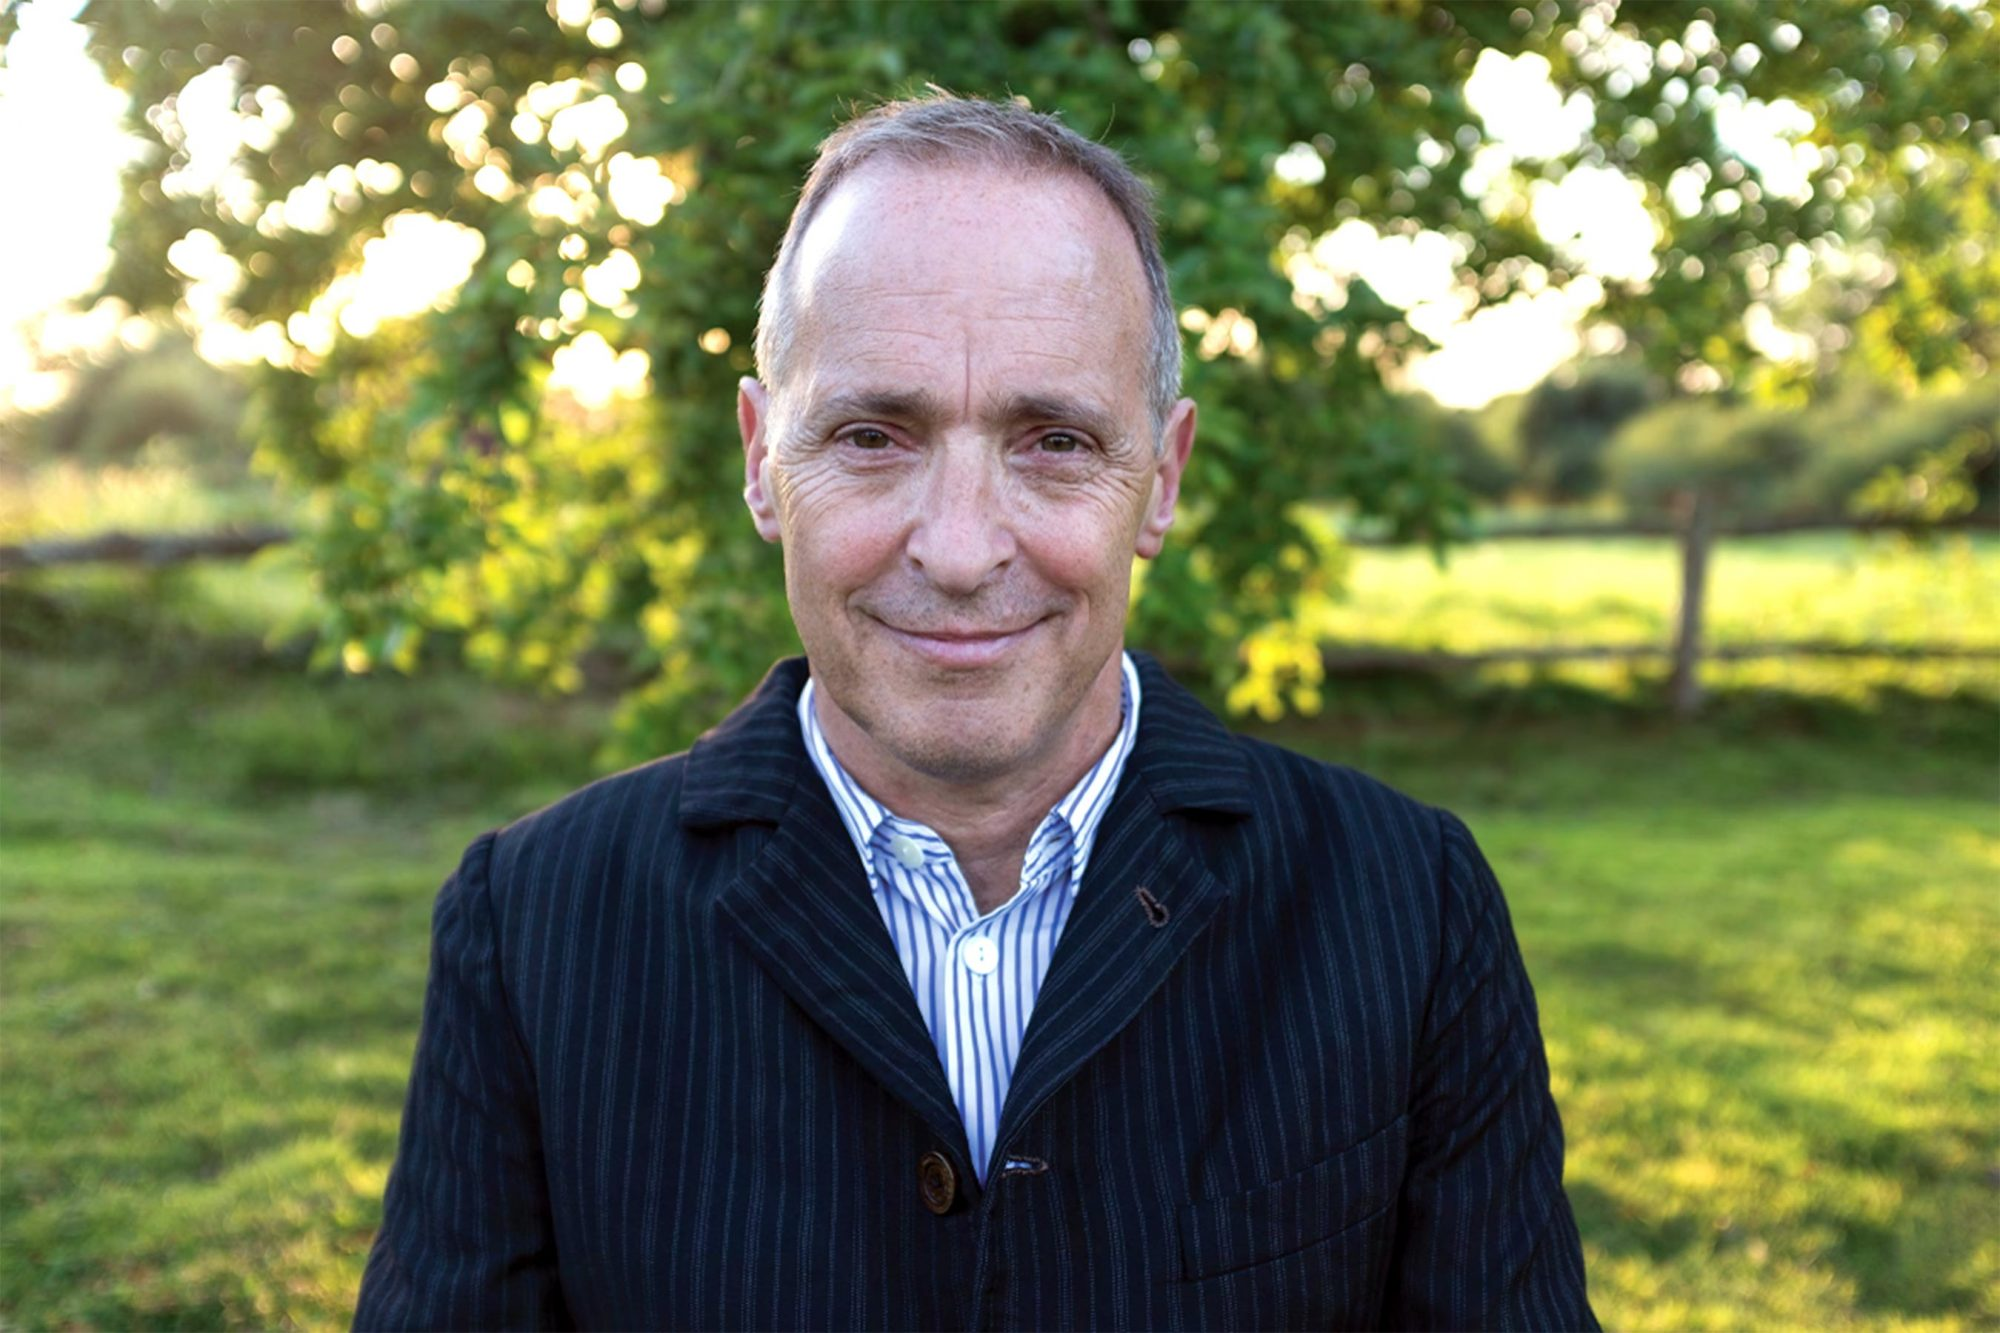 David Sedaris author photo Credit Ingrid Christie